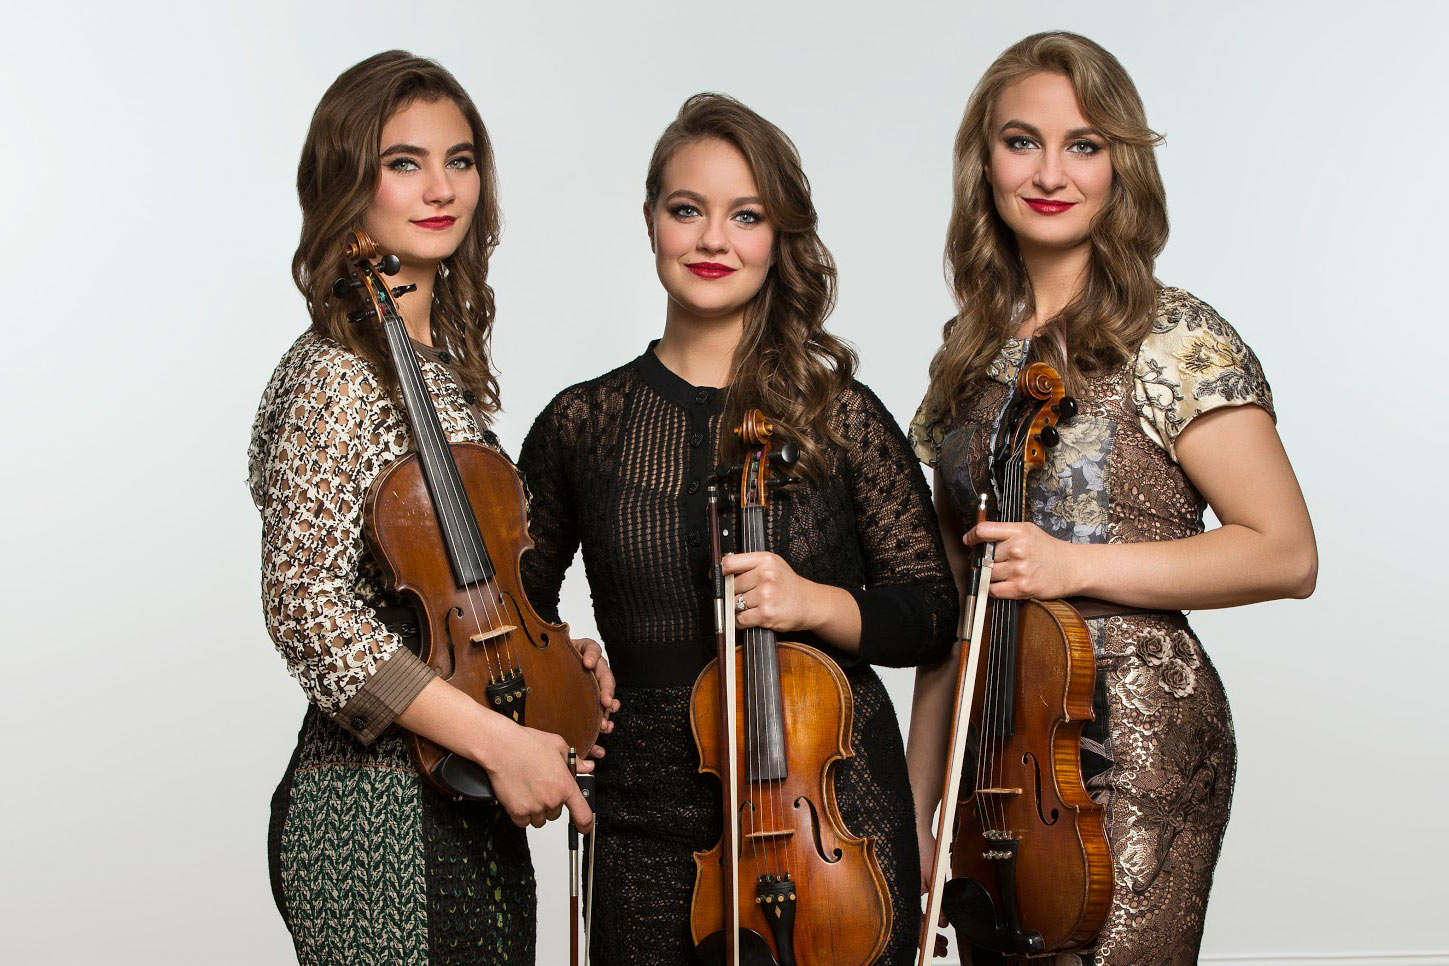 The Quebe Sisters to bring Western swing to Bayou Theater for Valentine's Day